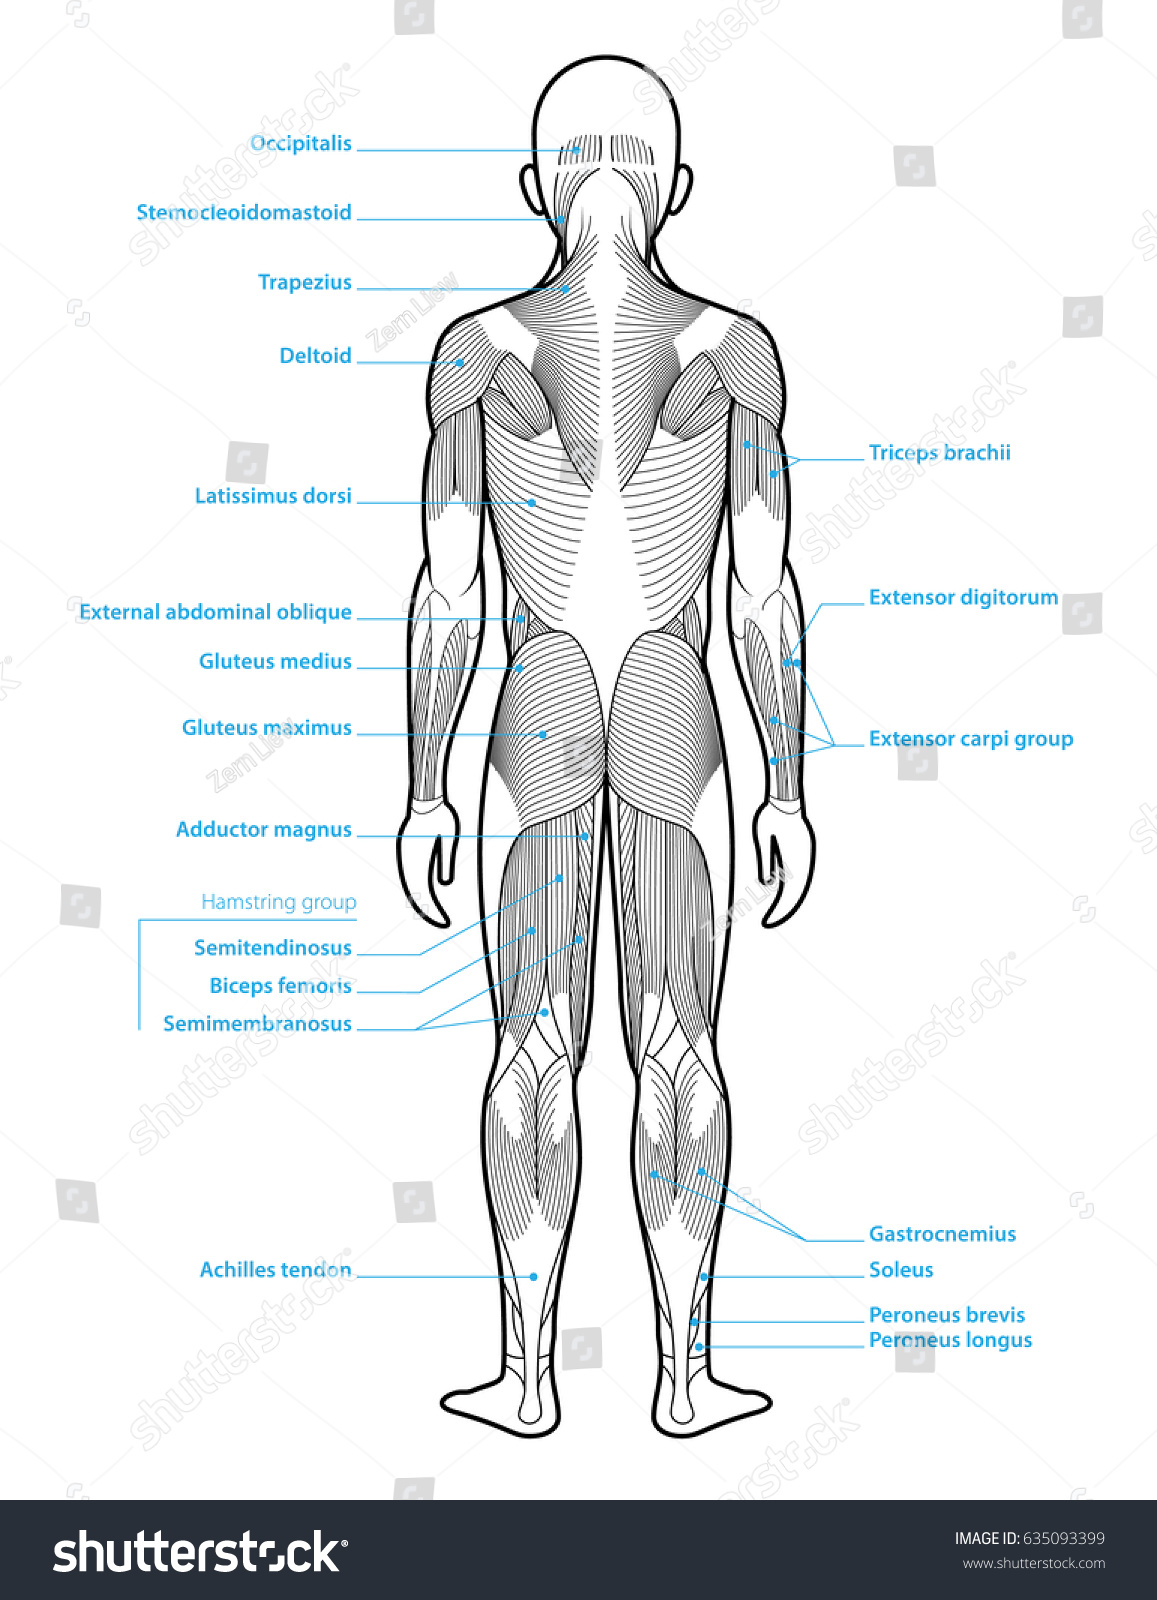 major muscle diagram to label garage door remote programming stylized anatomy showing stock vector royalty groups shown from the back posterior view with labels